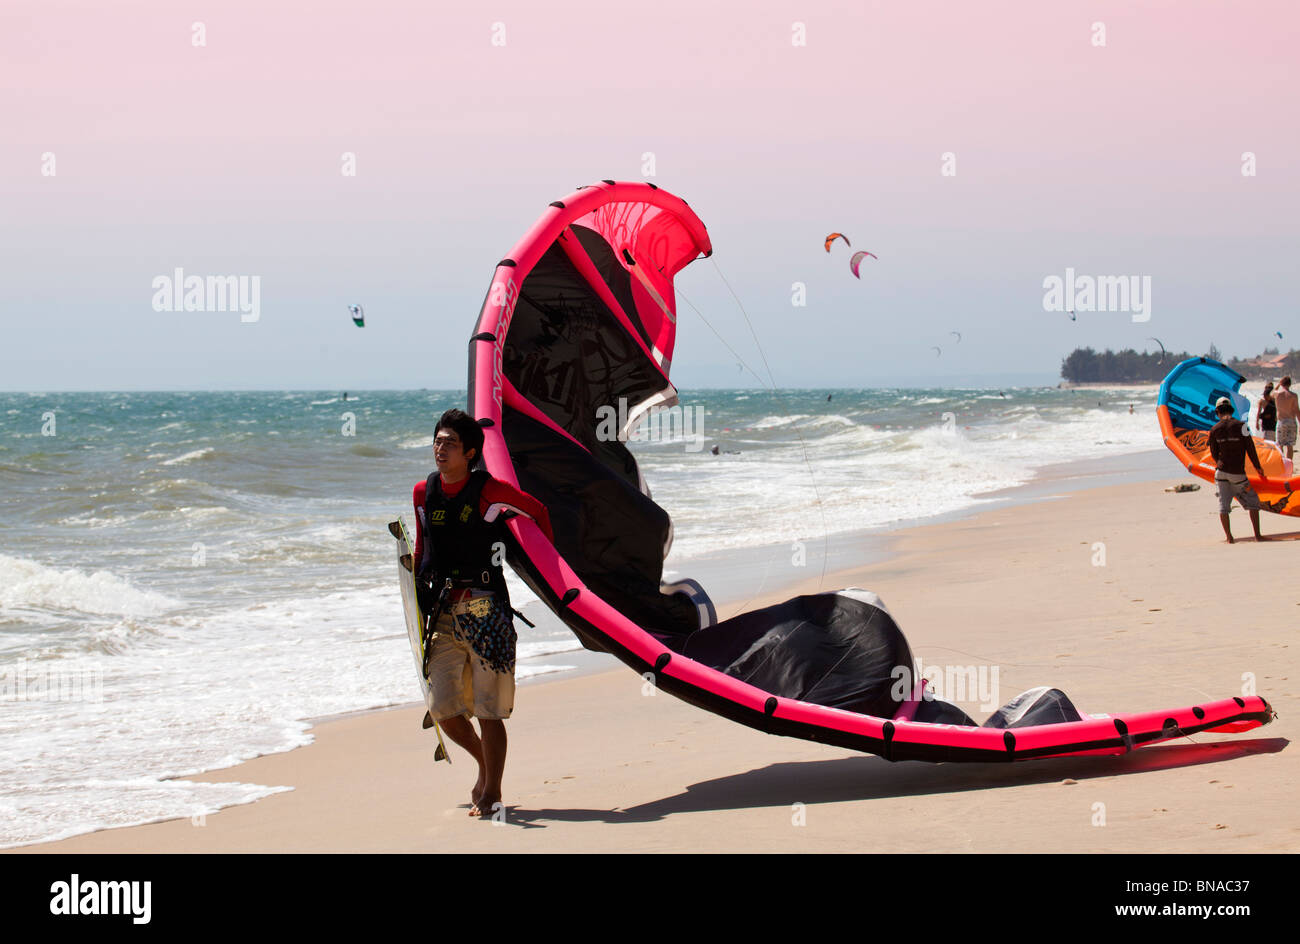 Kitesurfing and view of beach and kitesurfers in action - Stock Image